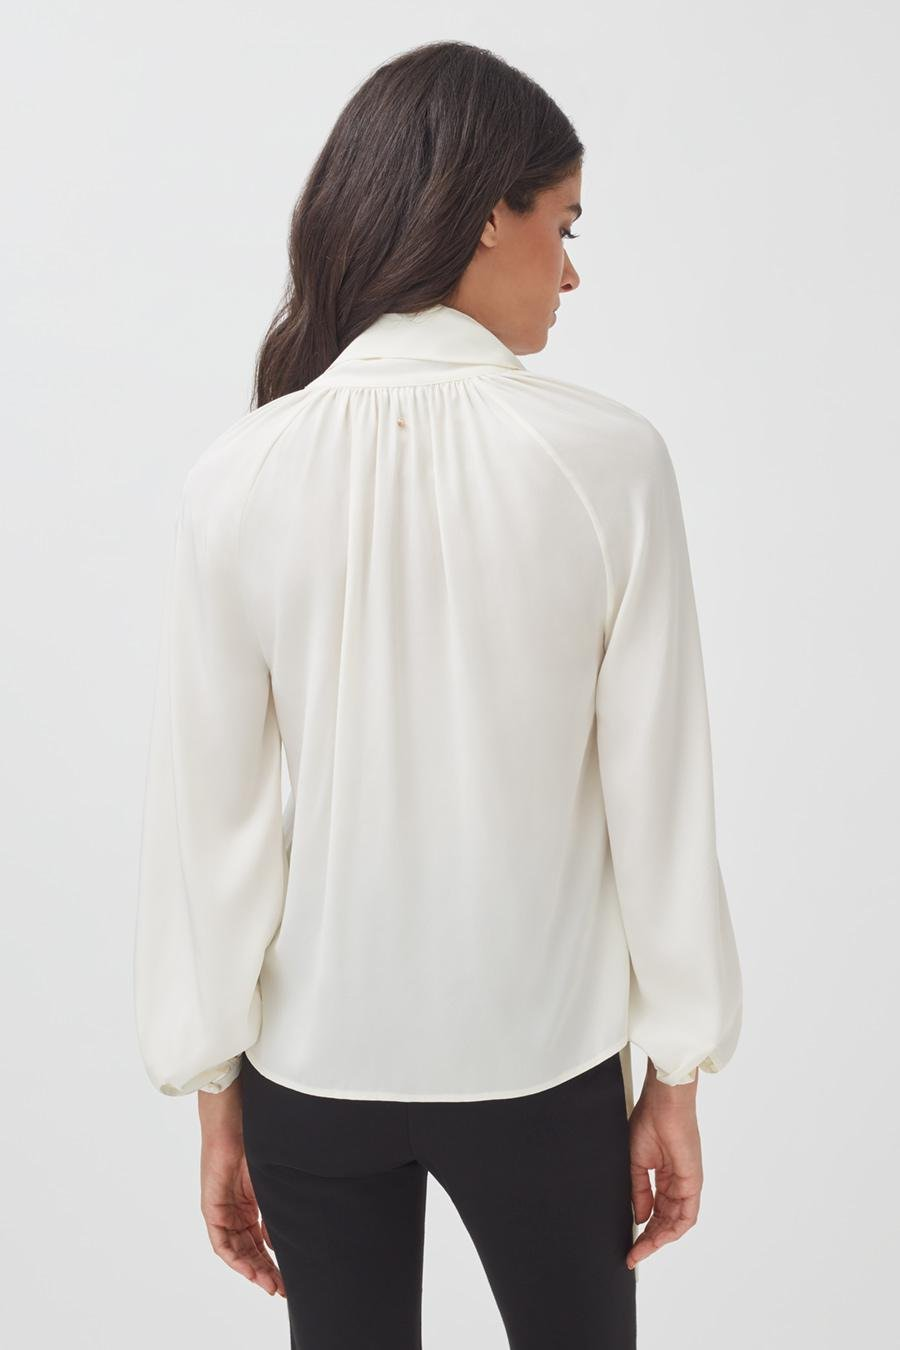 Women's Silk Bow Blouse in White | Size: 2